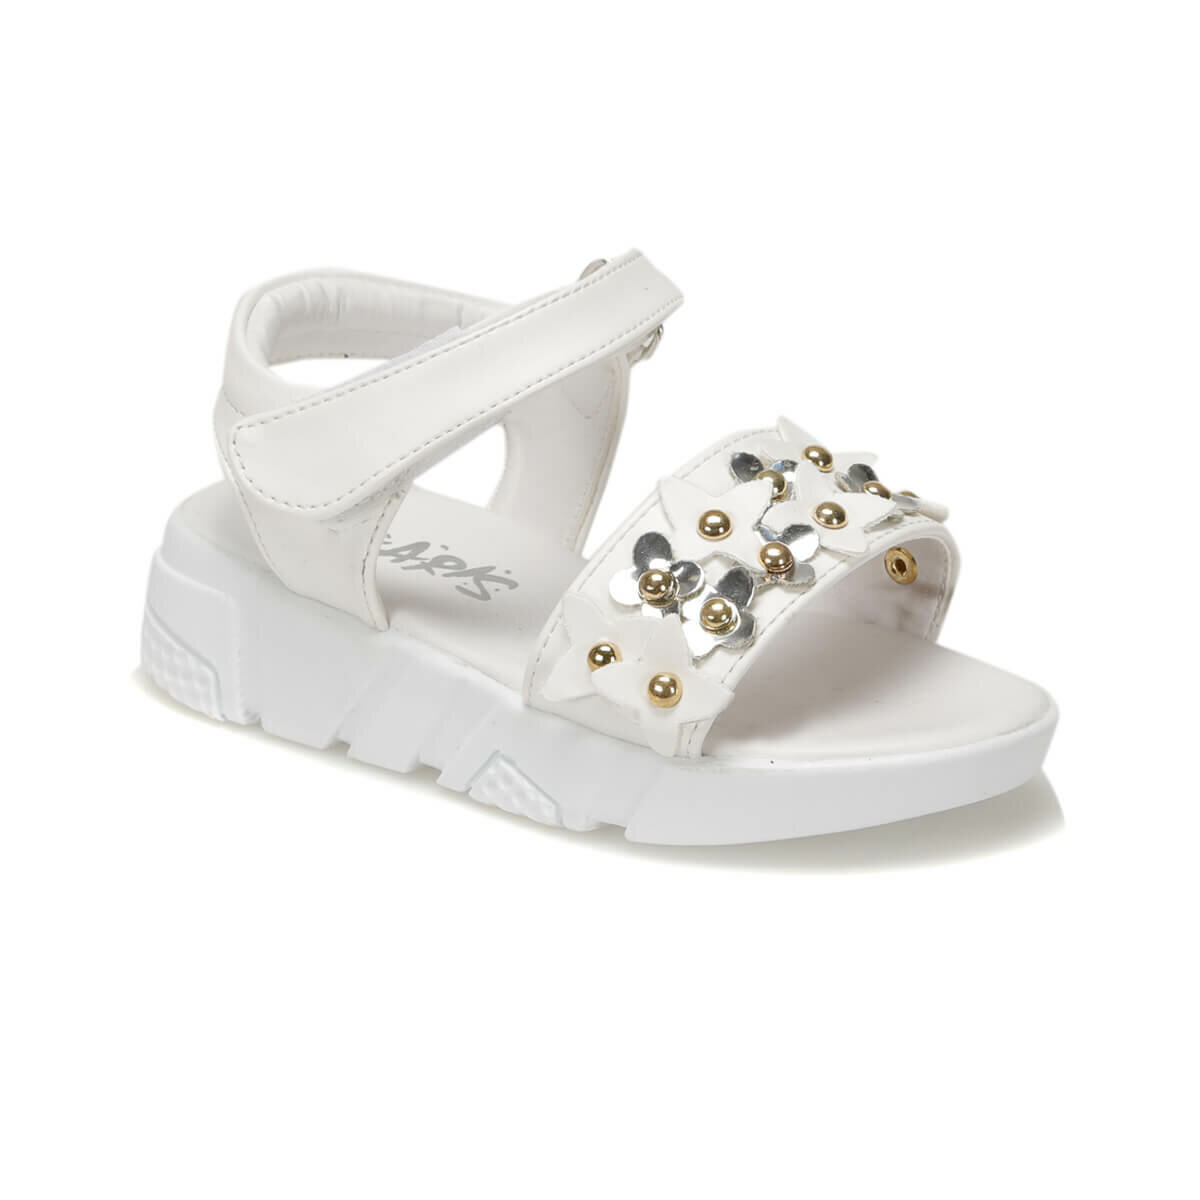 FLO 91.511264.P White Female Child Sandals Polaris